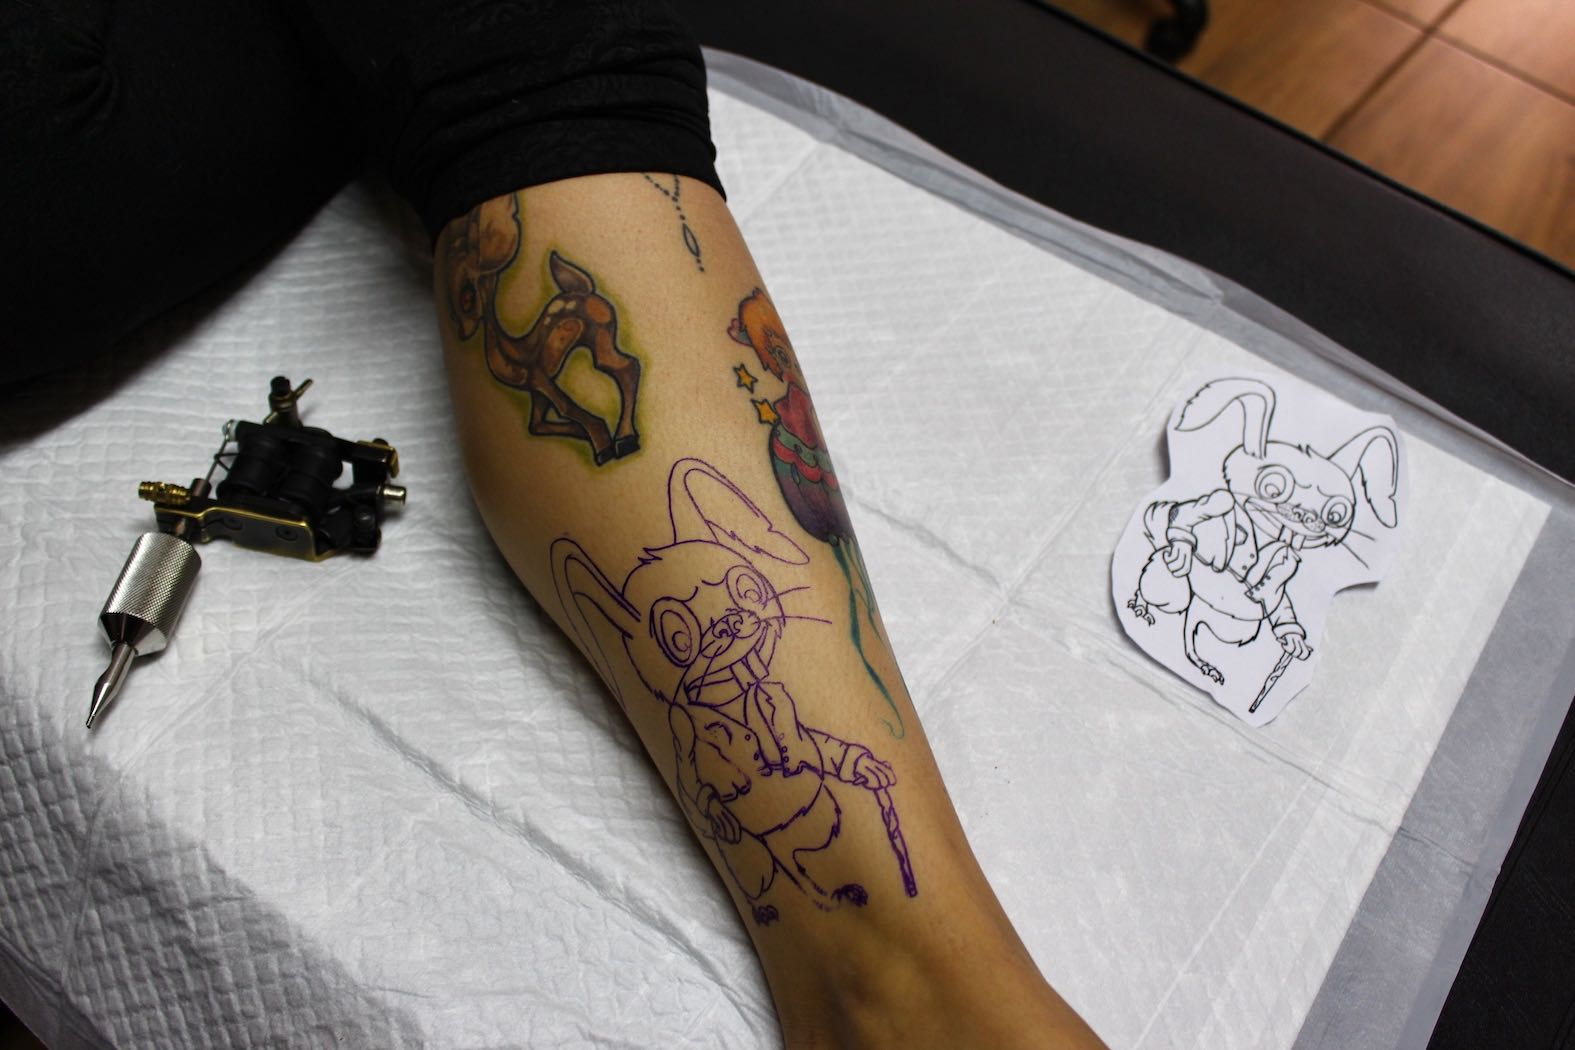 laying down the stencil and getting ready to tattoo